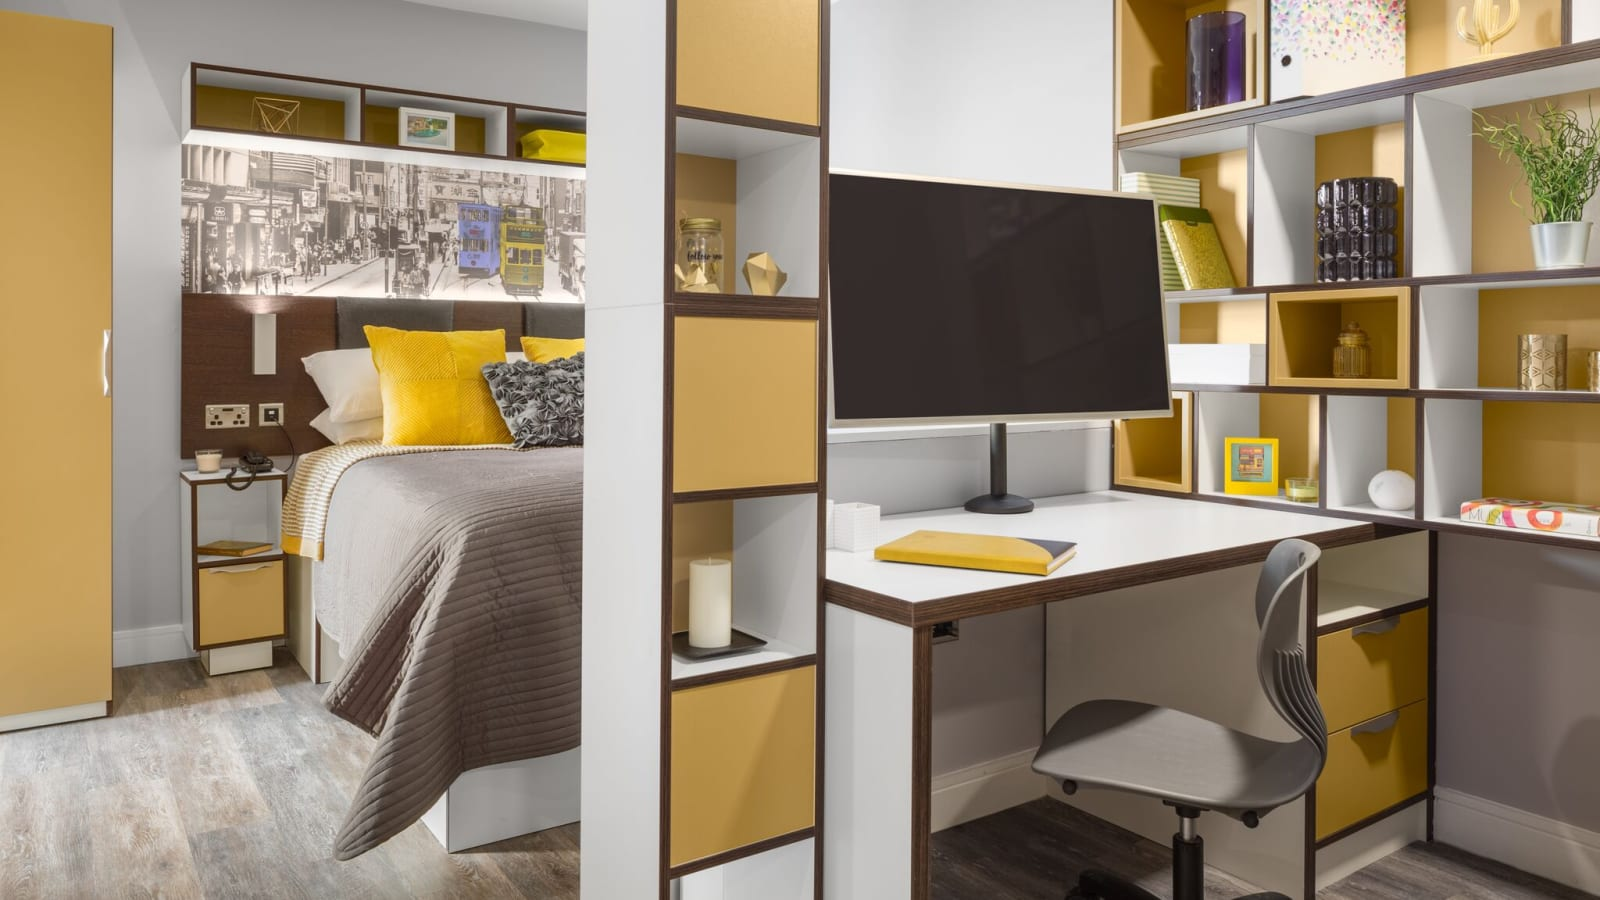 The Ascent Luxury Student Accommodation In Liverpool